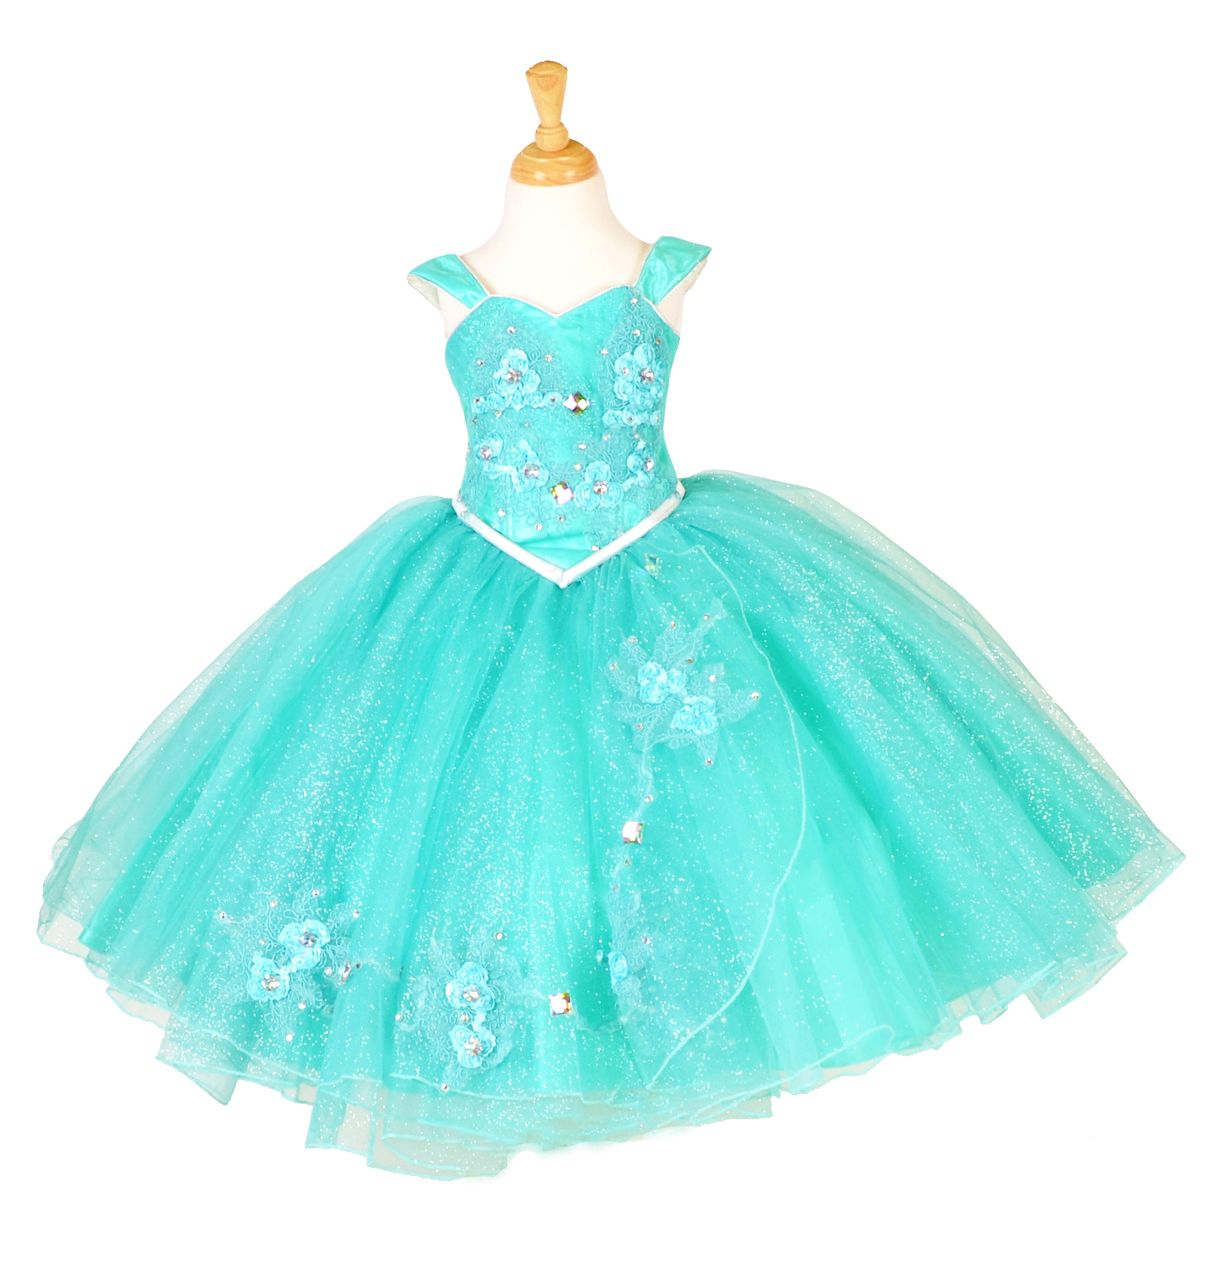 89649bebfe0f2 Girls Princess Cinderella Snow White Cosplay Costume Party Child Fancy Dress